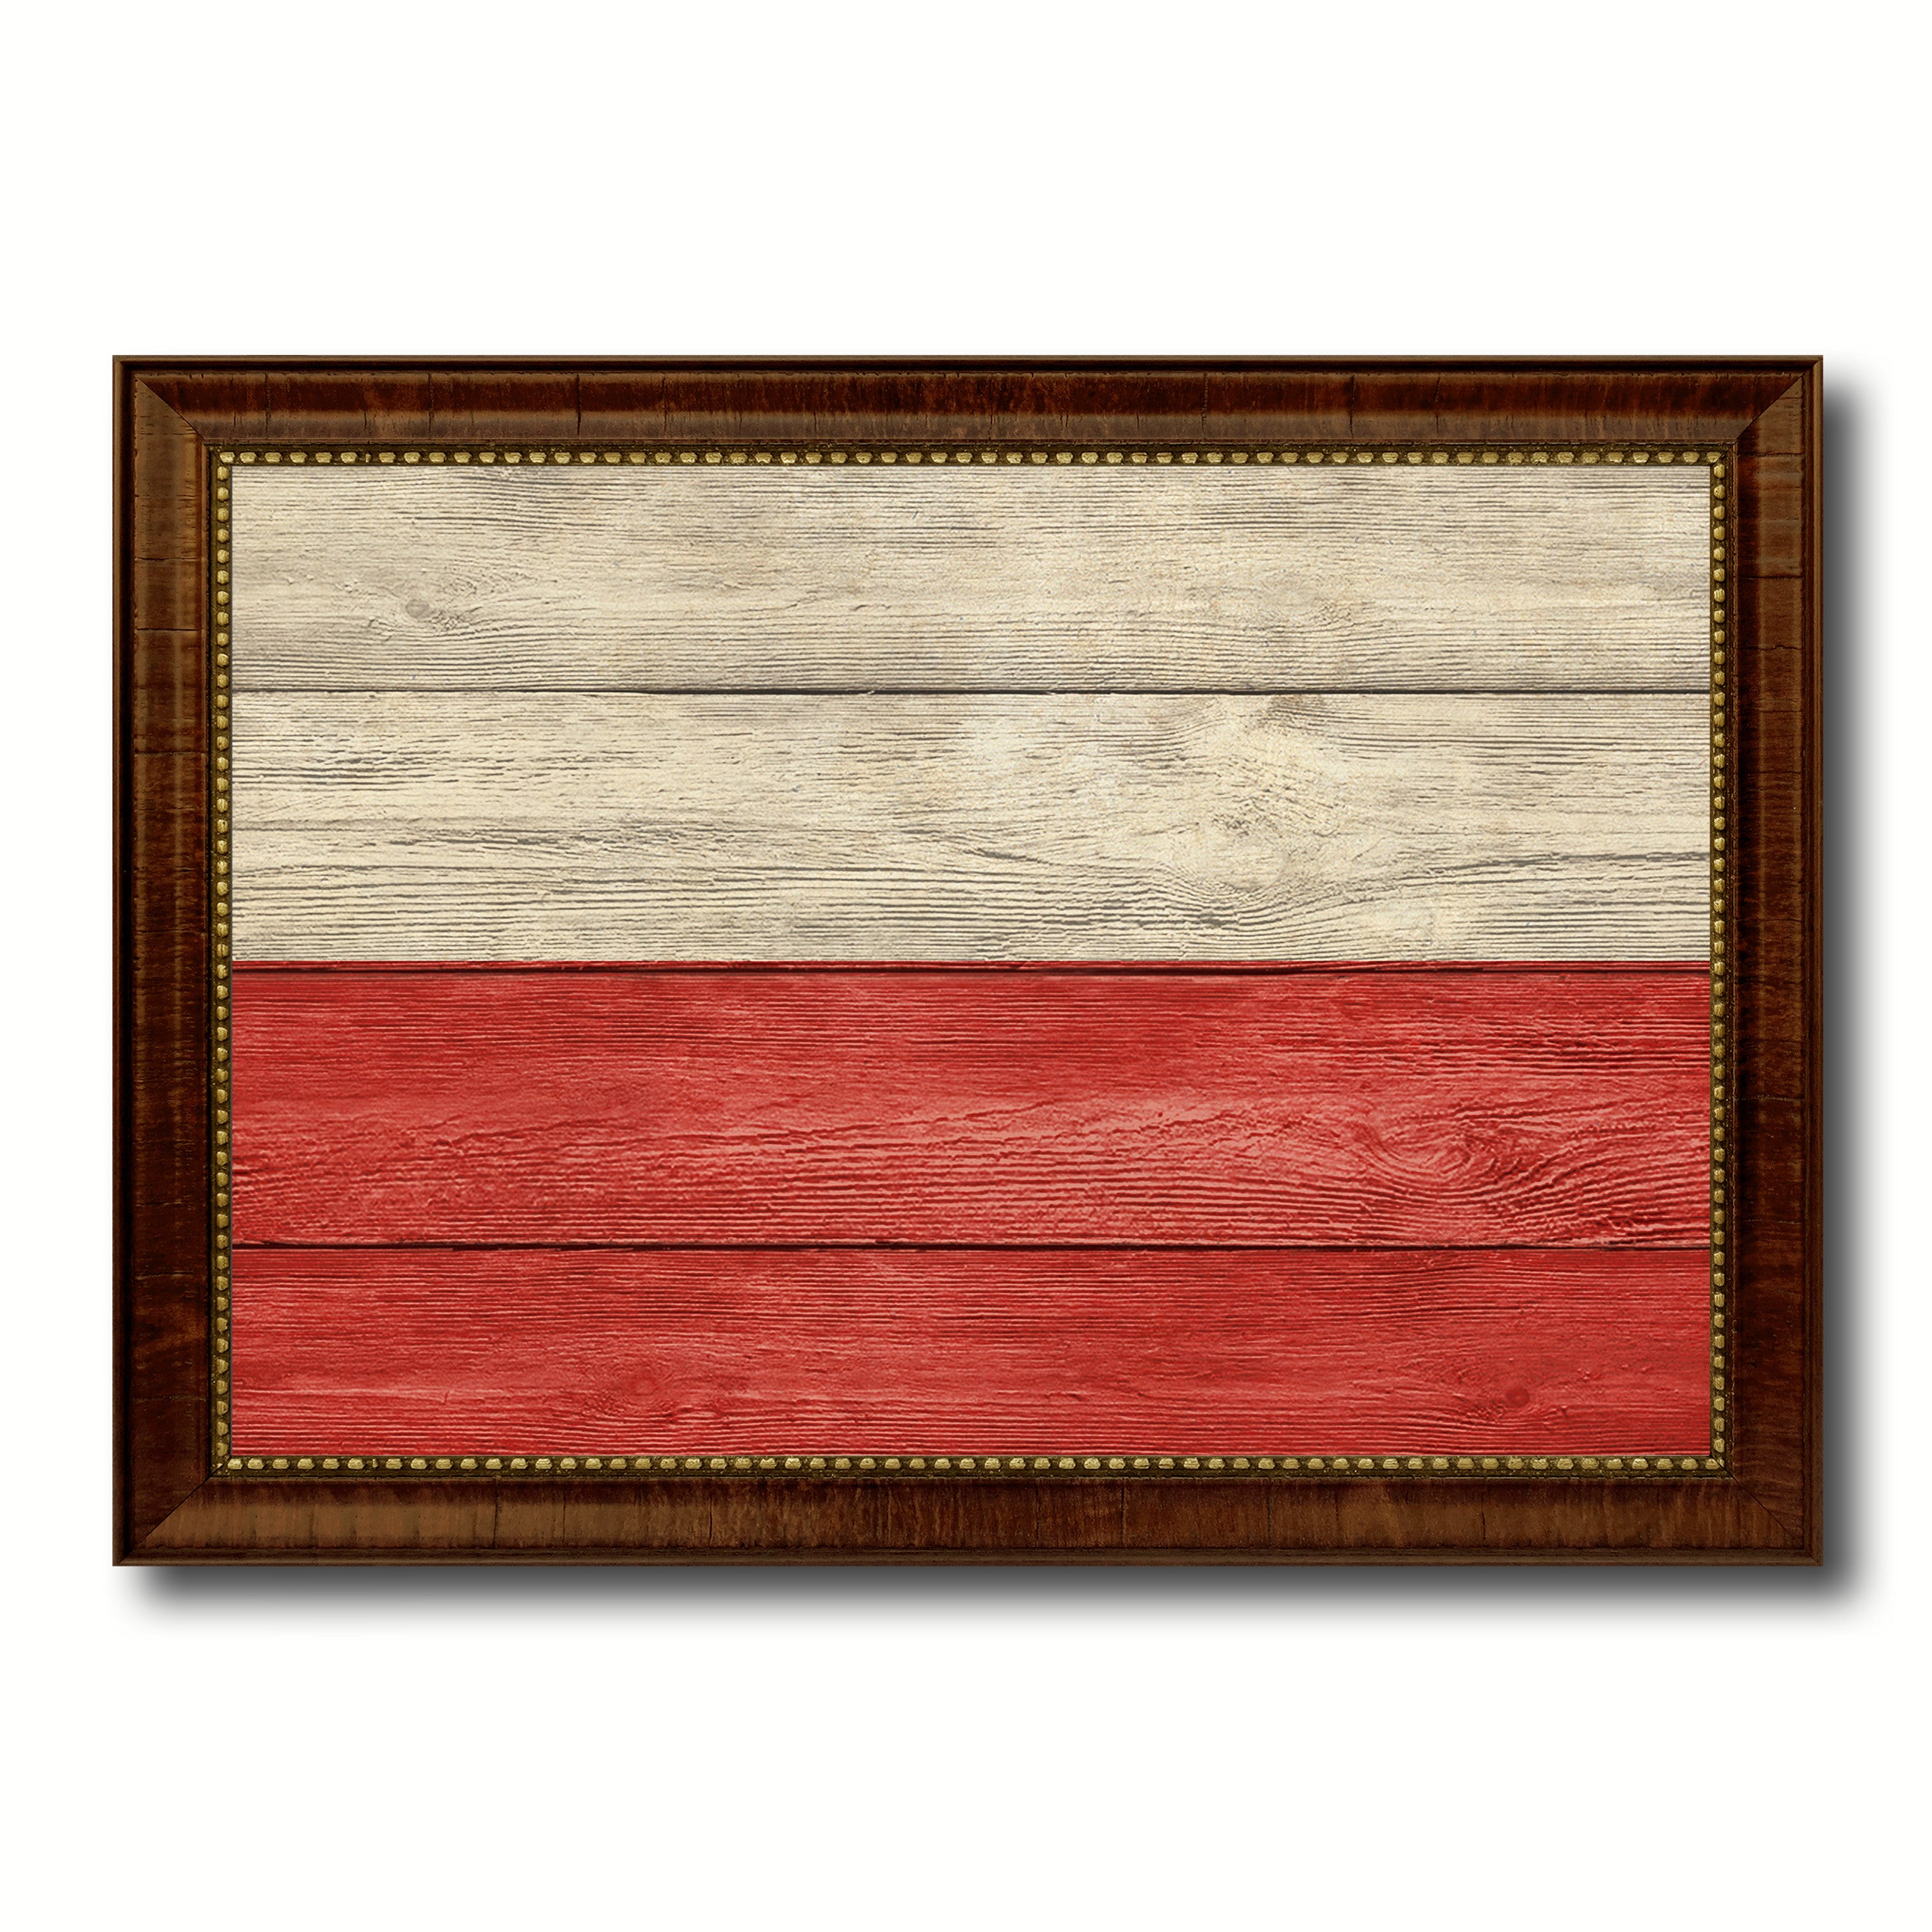 Poland Country Flag Texture Home Decor Gift Ideas Wall Art Decoration Collection SpotColorArt